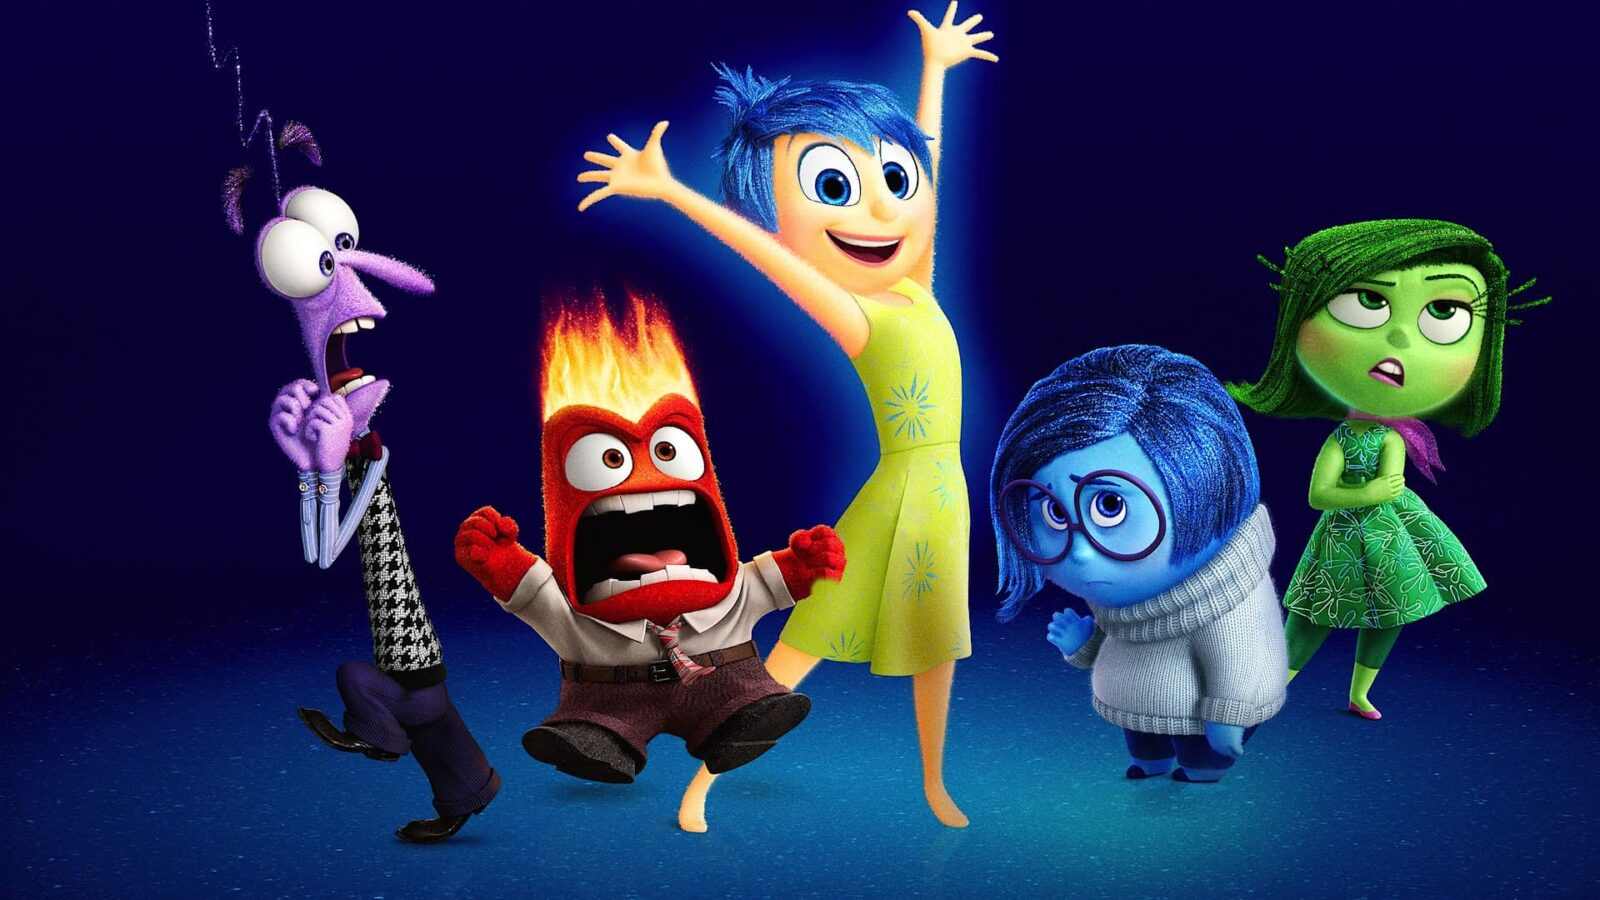 Inside out wallpapers hd download